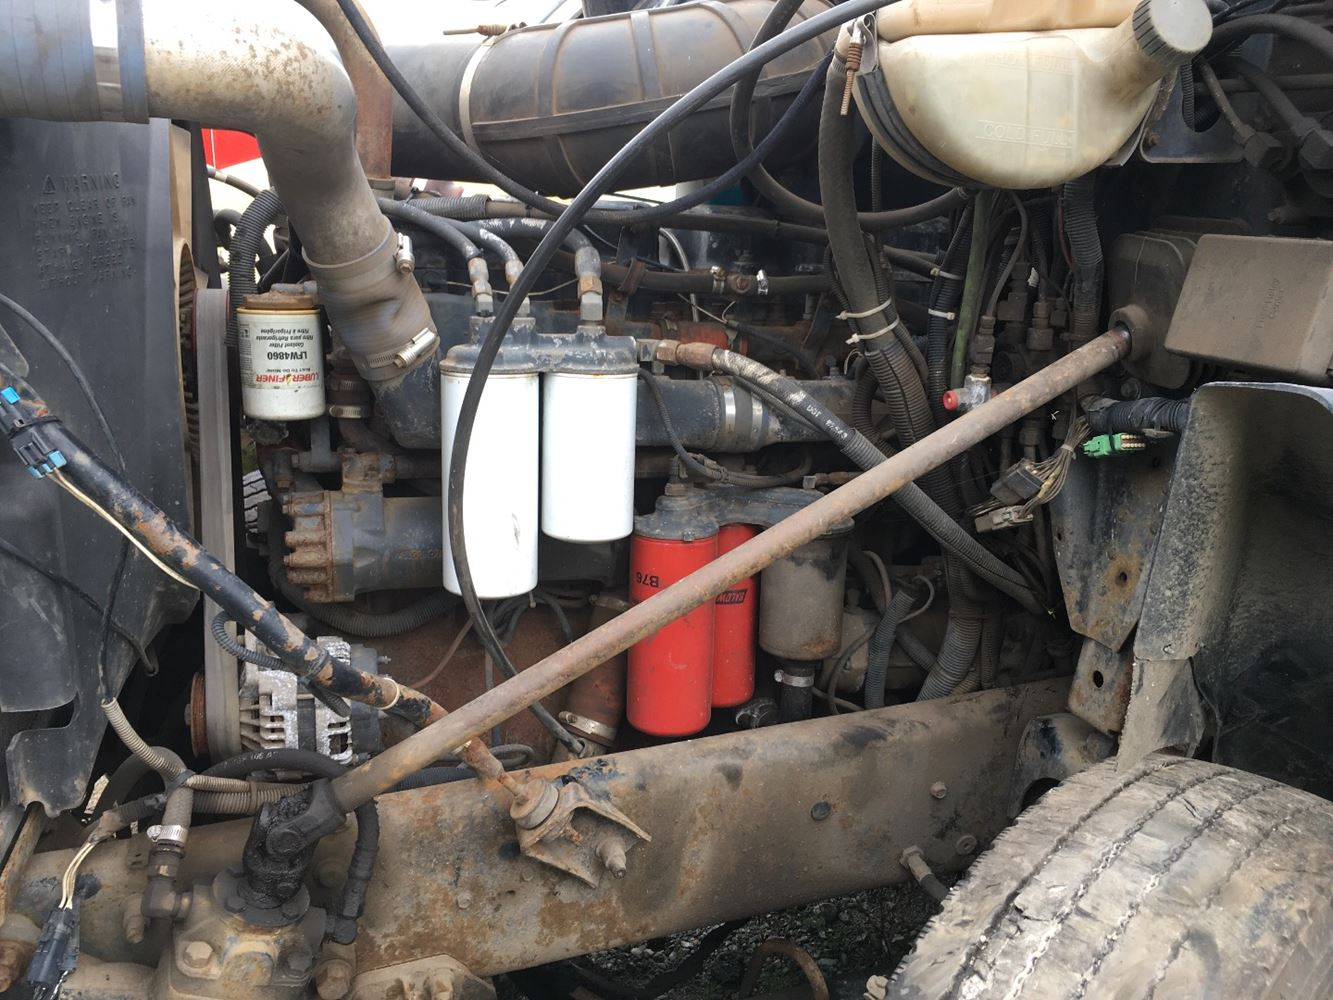 1999 MACK E7 ENGINE ASSEMBLY TRUCK PARTS #679838